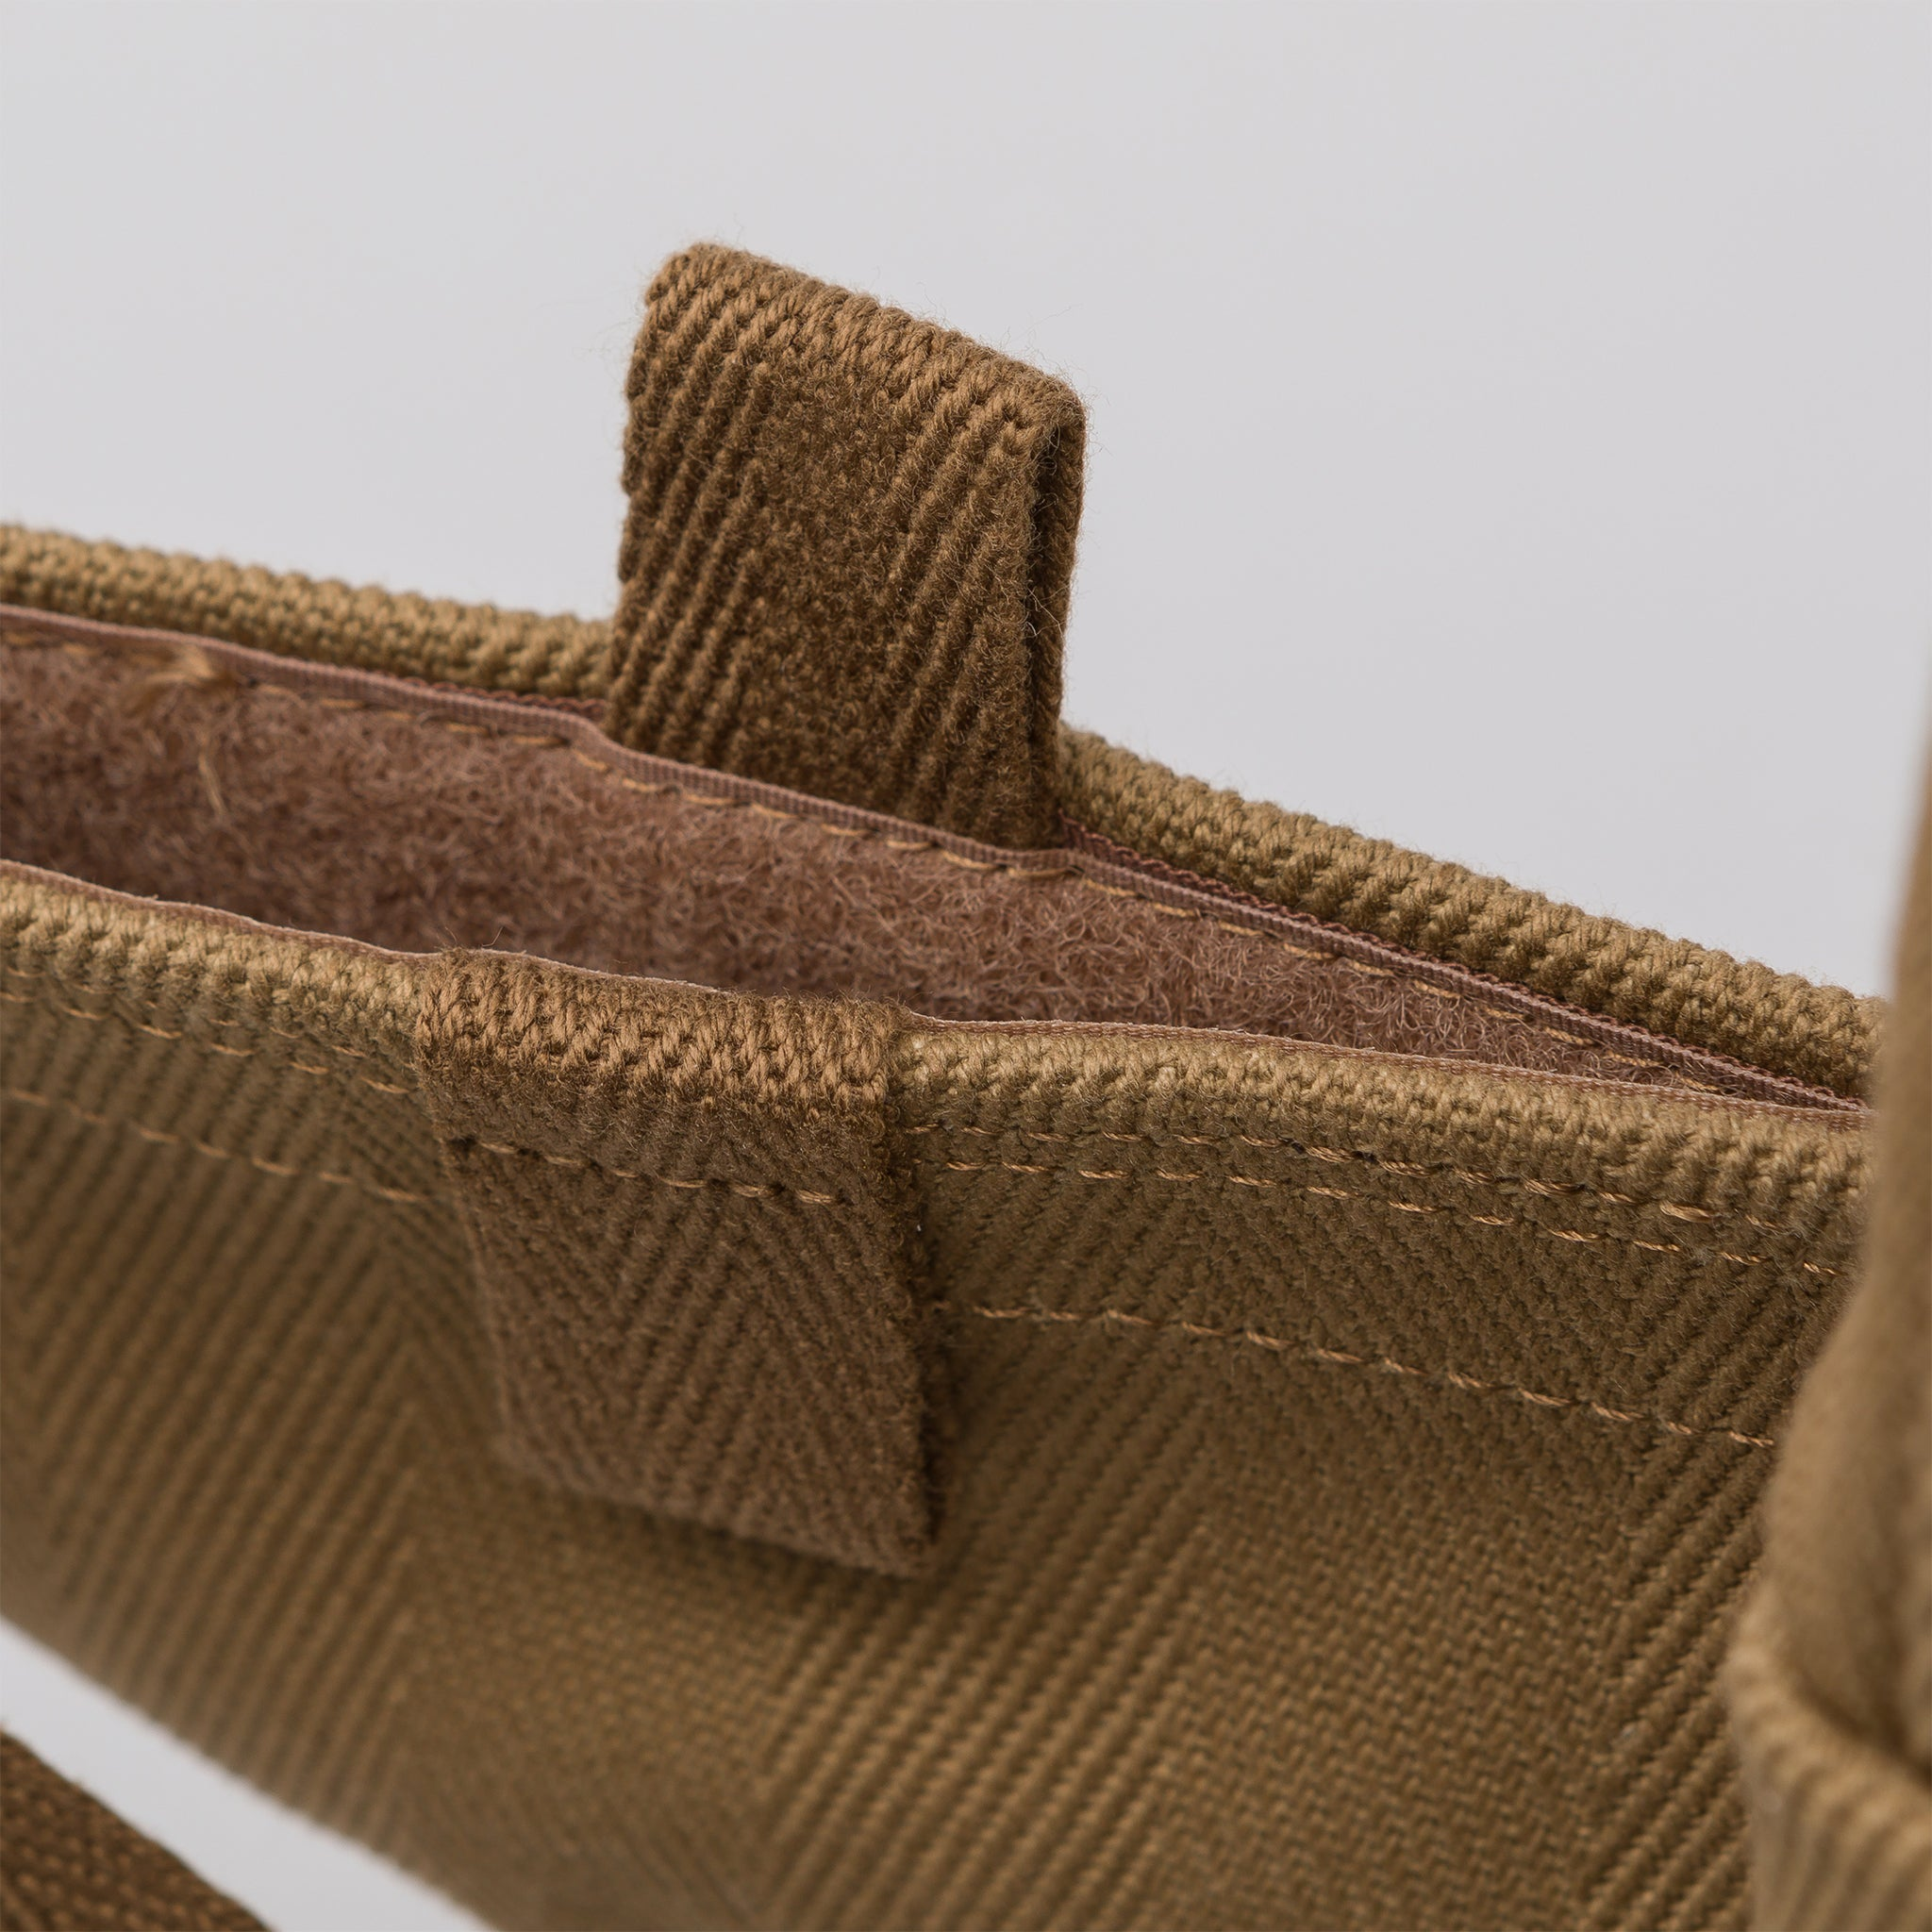 BANFF Waist Bag in Brown